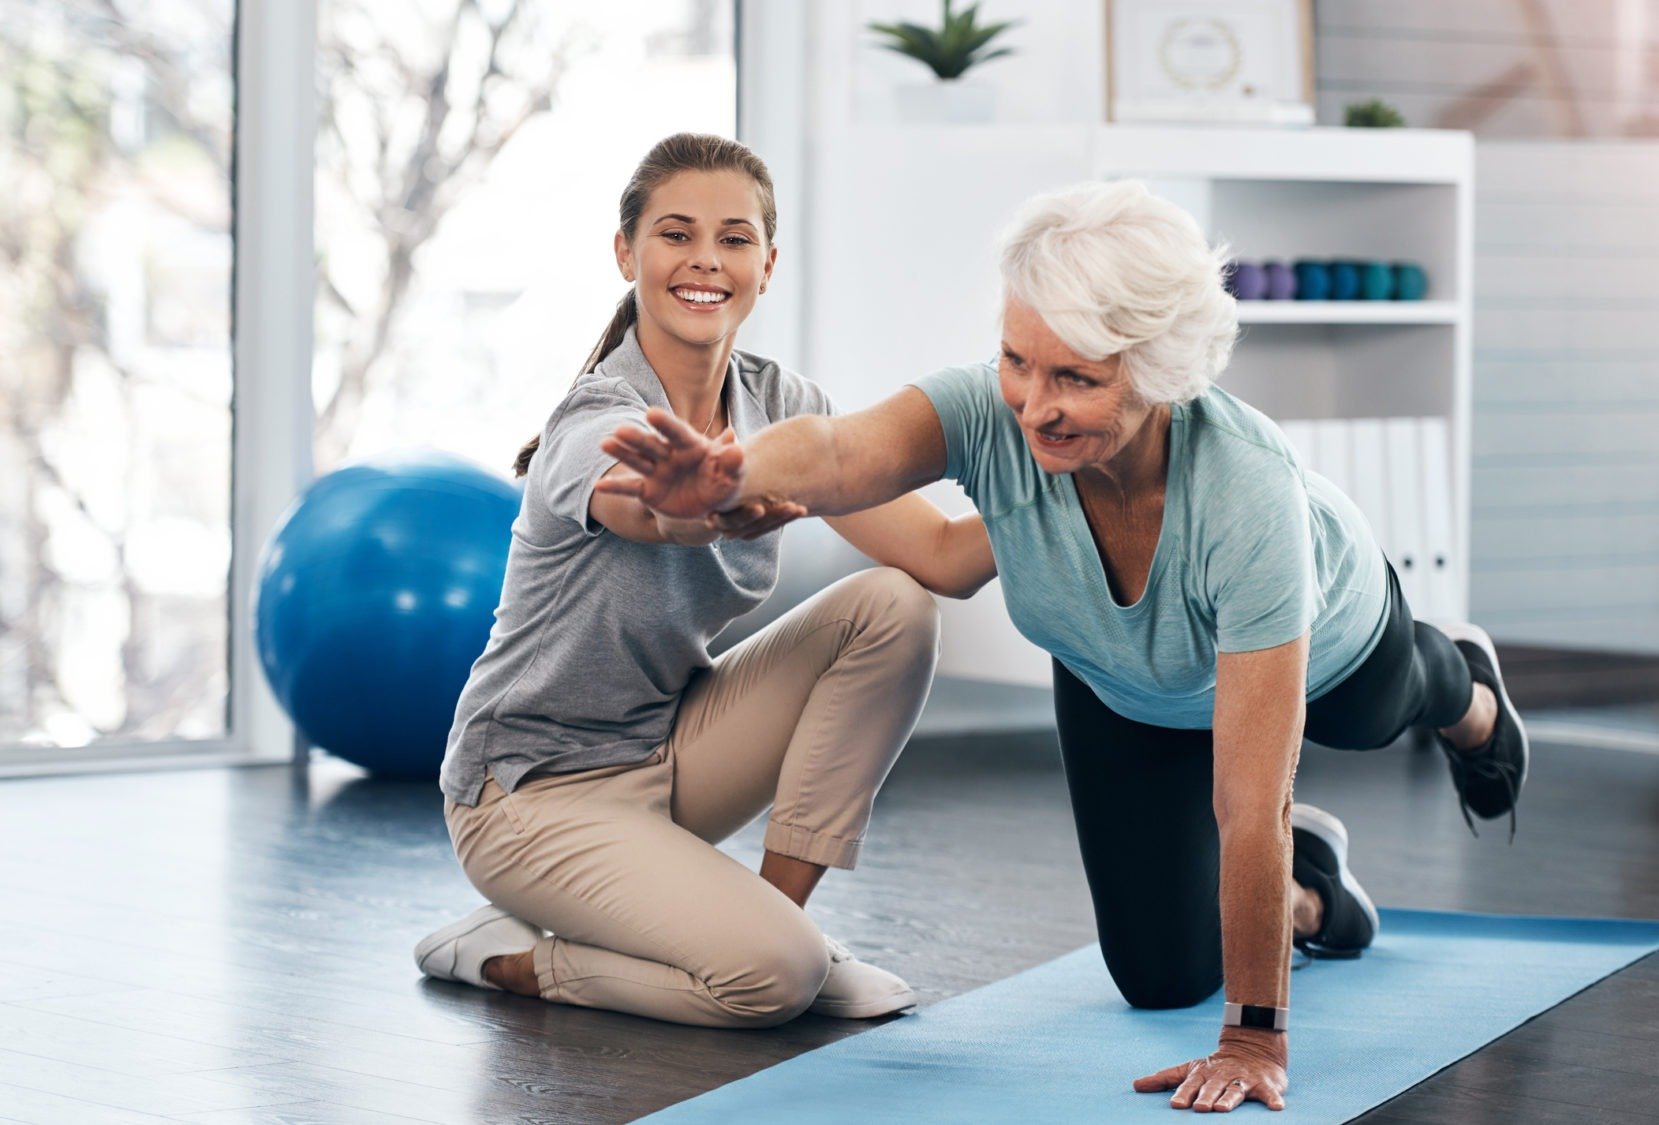 woman workingOut exercise rehabilitation rehab physicalTherapy GettyImages 1147930007 e1574886934123